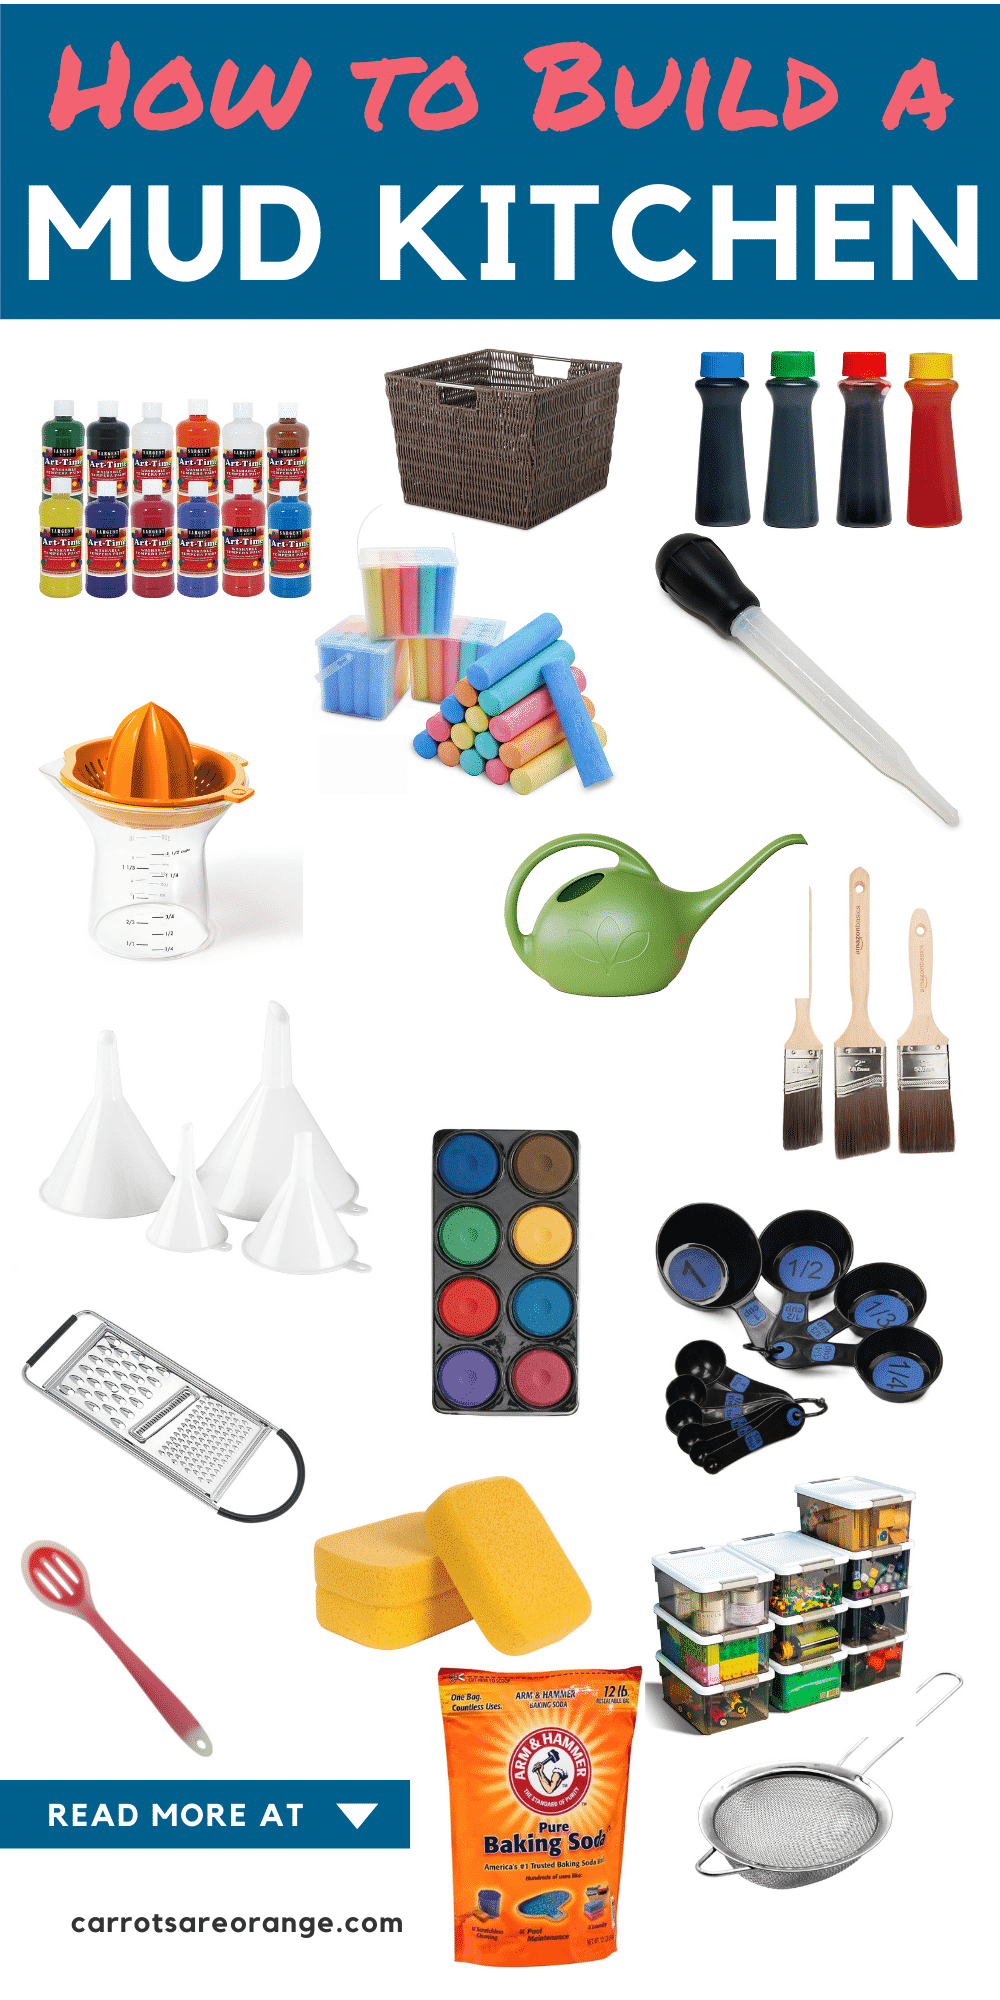 Items for Mud Kitchen